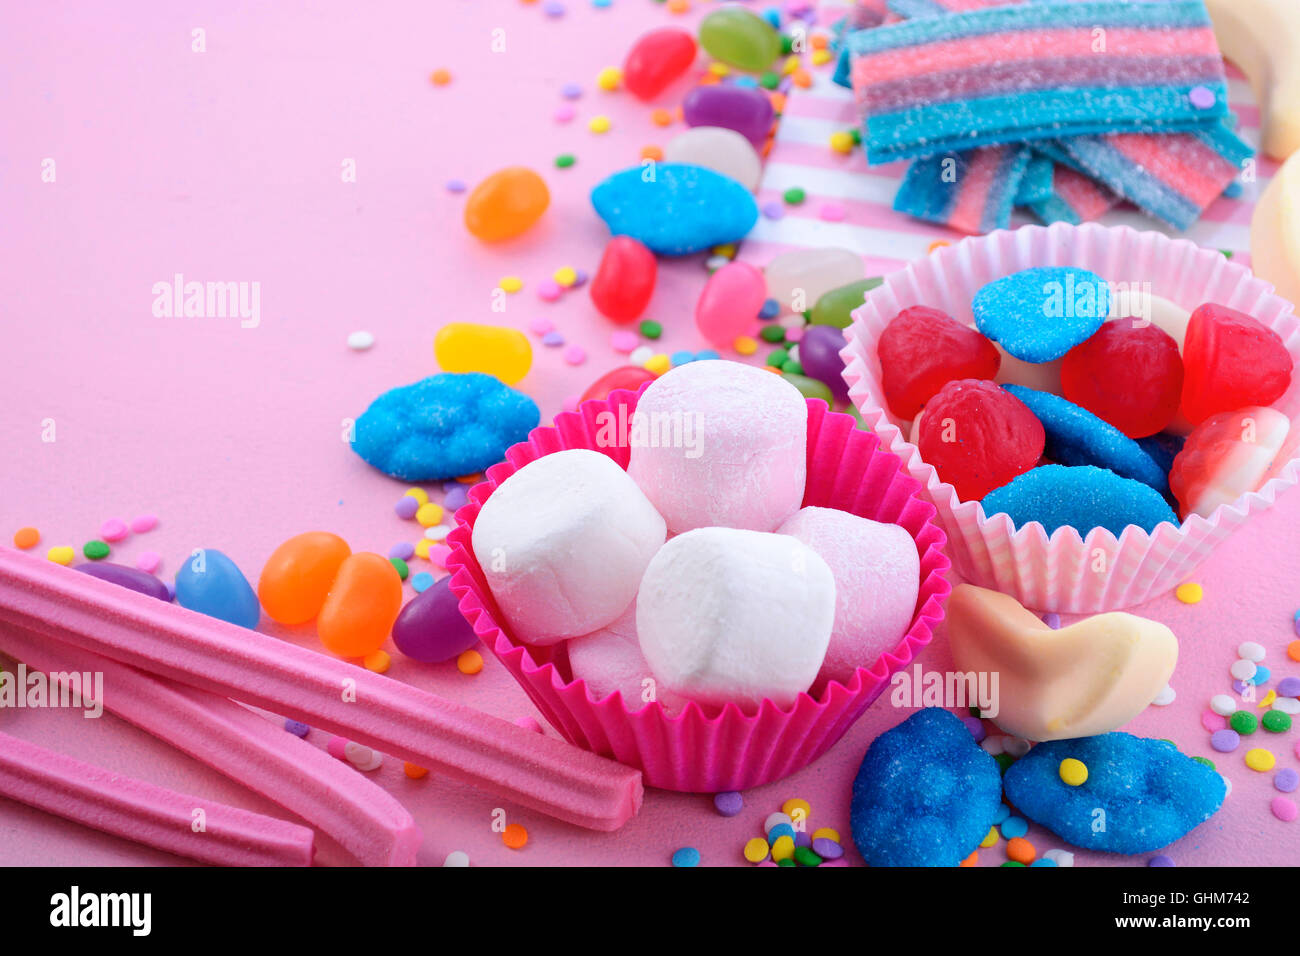 Party Favor Stock Photos & Party Favor Stock Images - Alamy